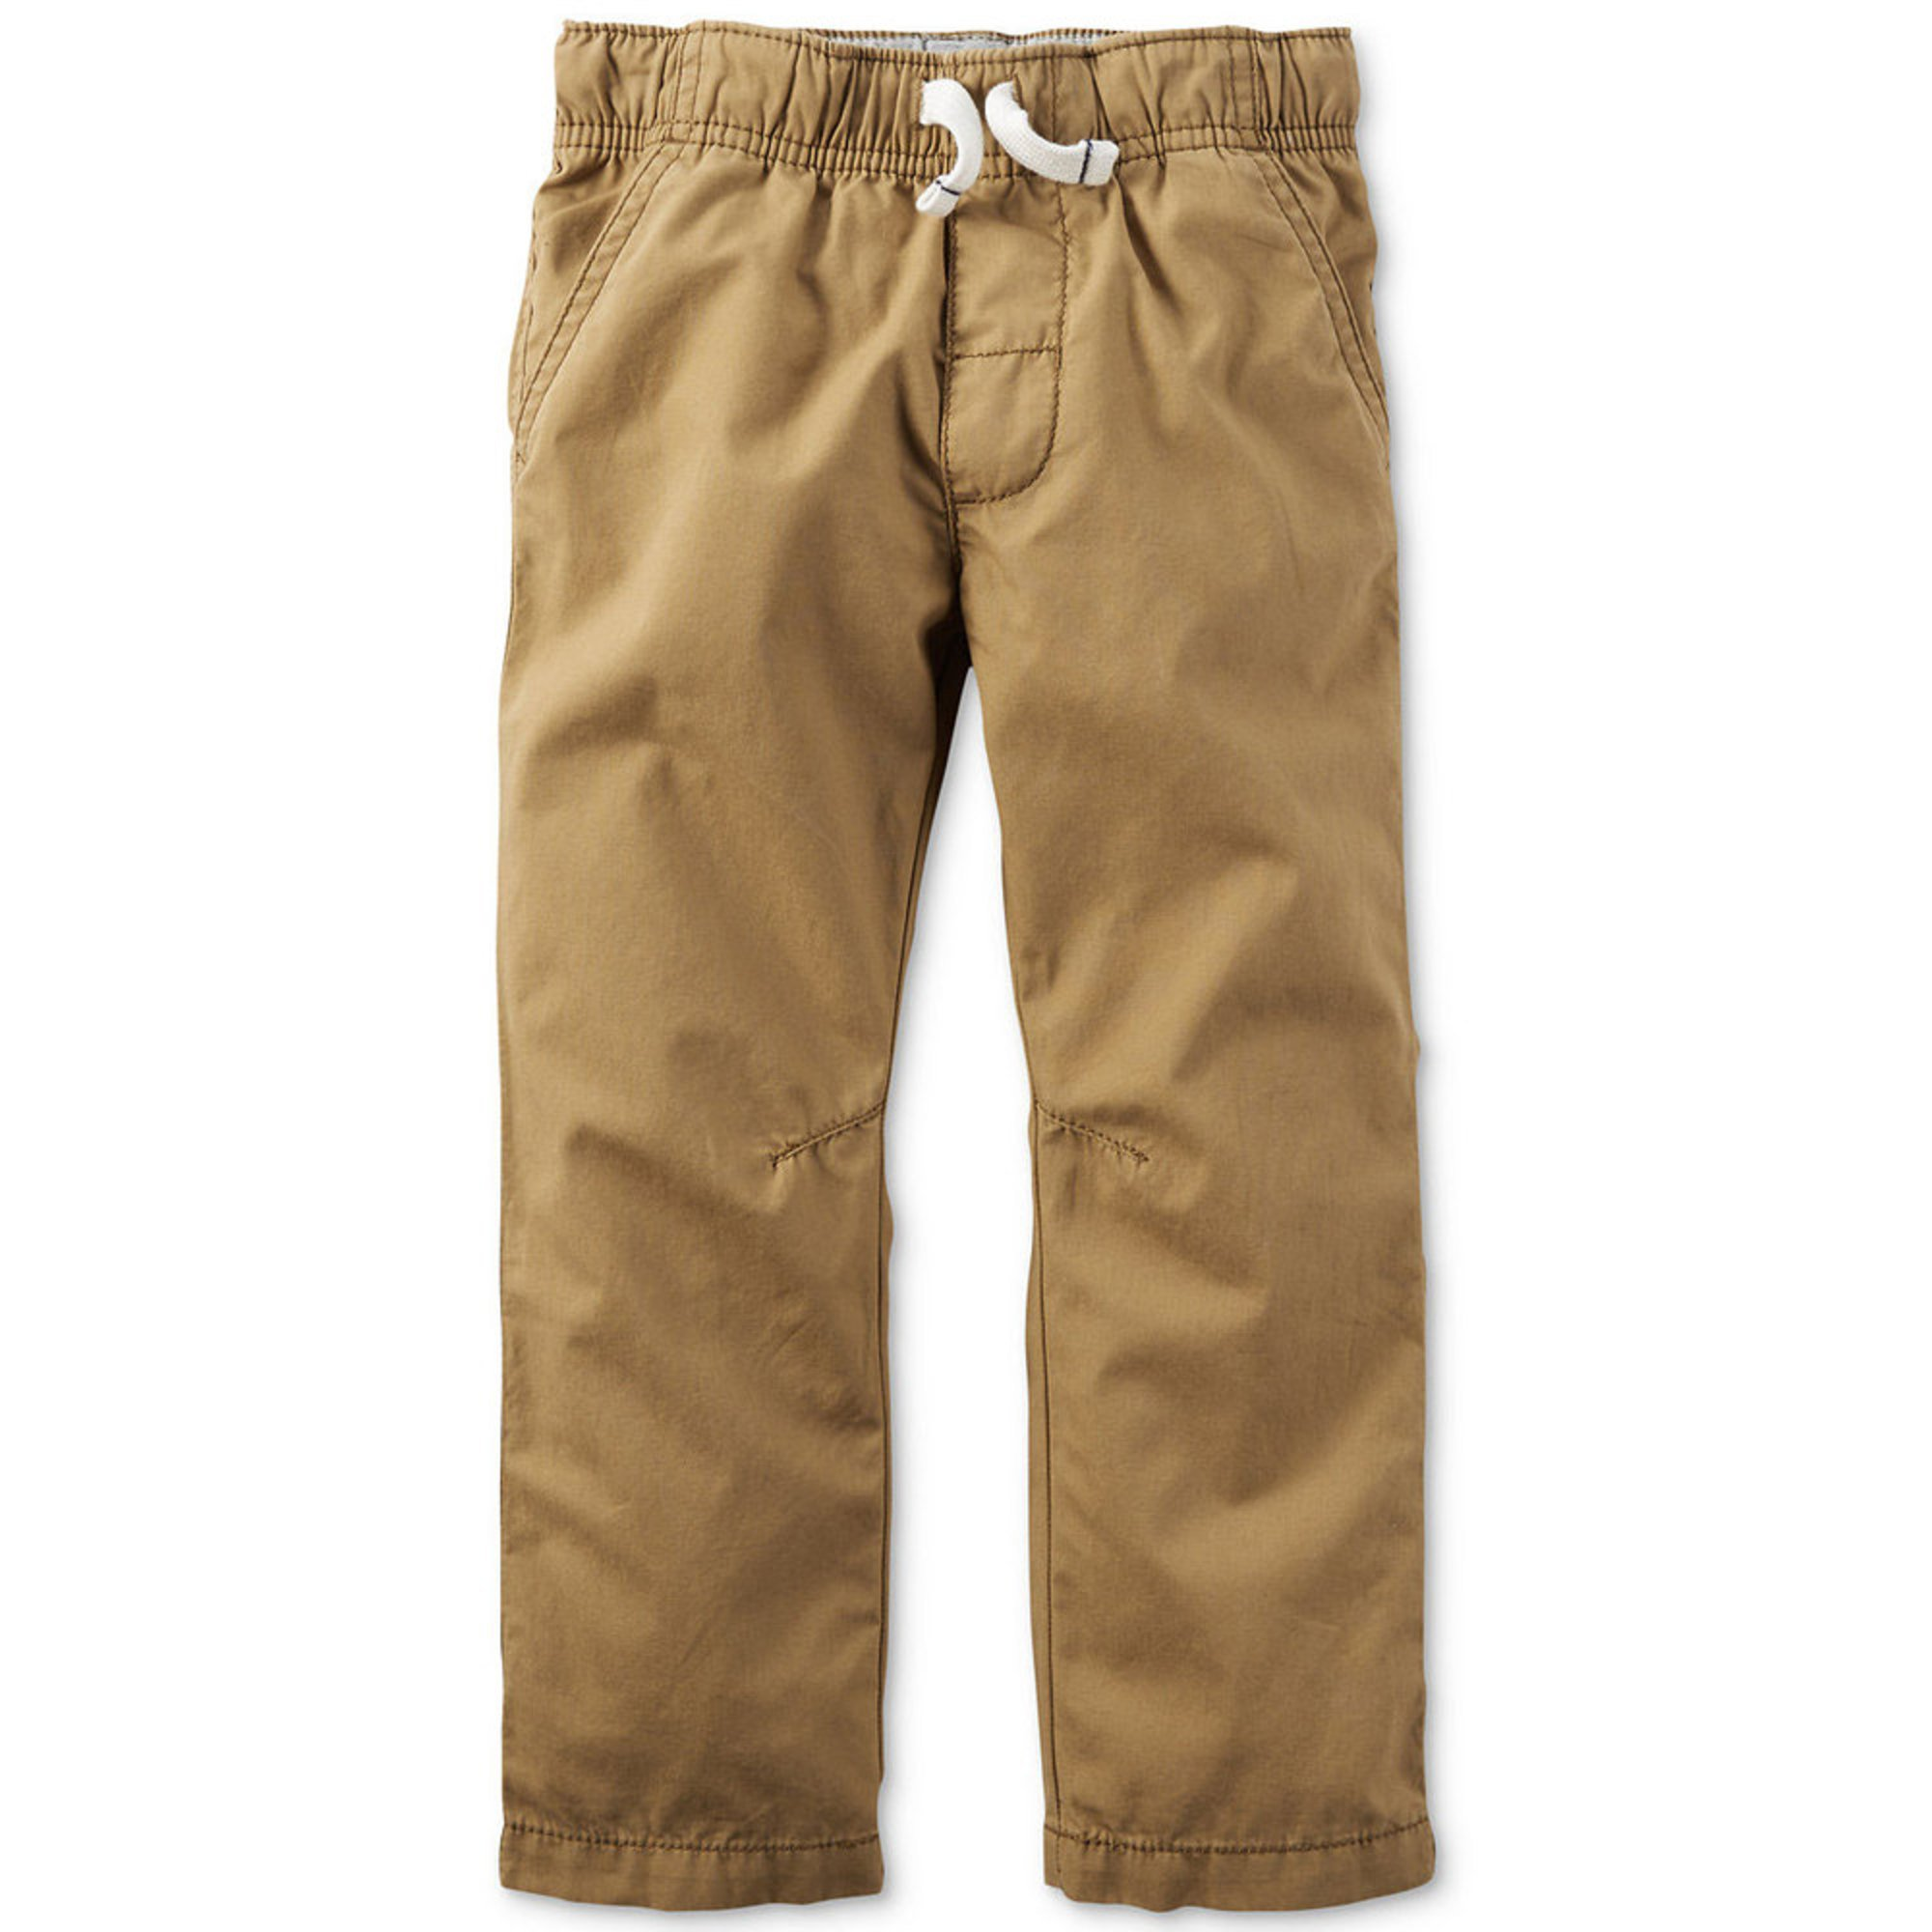 Khakis are a type of casual pants suitable for everyday wear. You can find them in the traditional khaki color that the name comes from, but they're also available in a variety of neutral hues such as black, brown, and blue. Khakis are an excellent choice for casual dinners, family get-togethers, and any informal or semi-formal occasion.